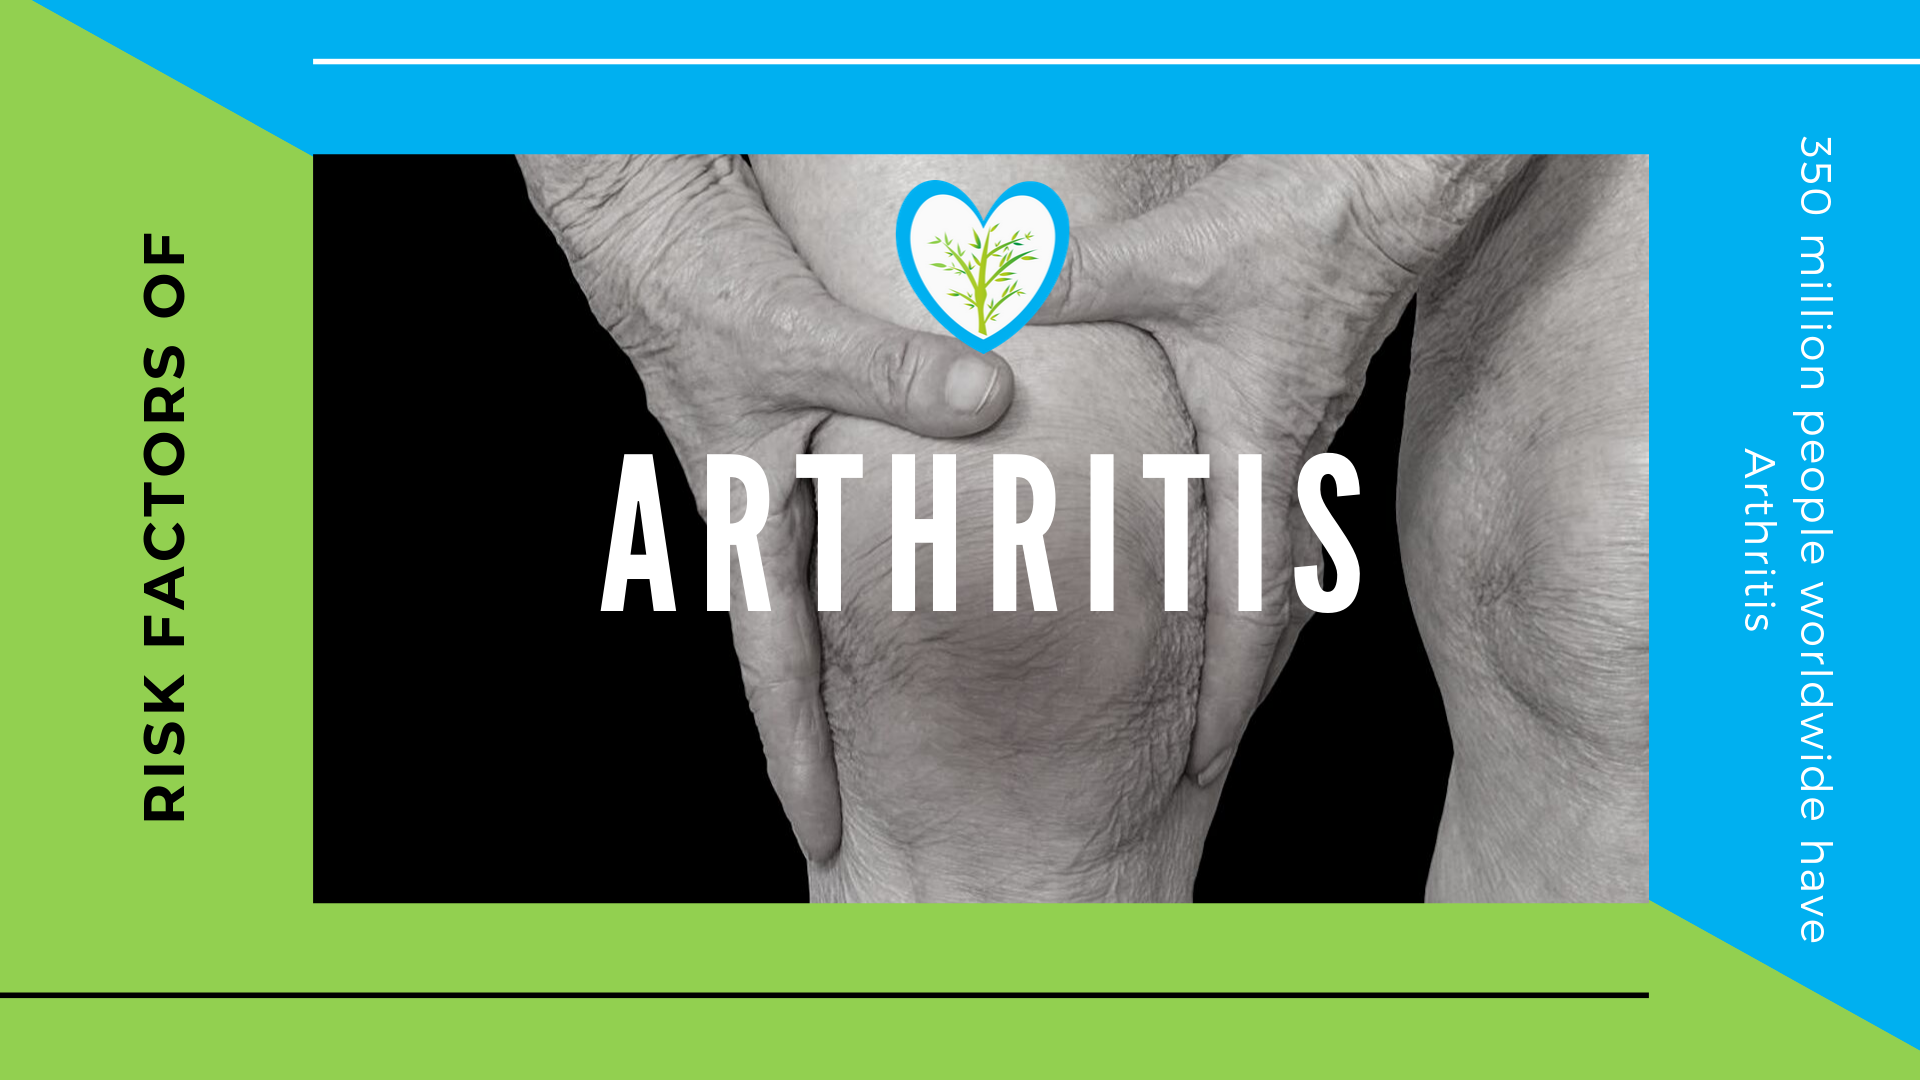 What are the Risk Factors of Arthritis?